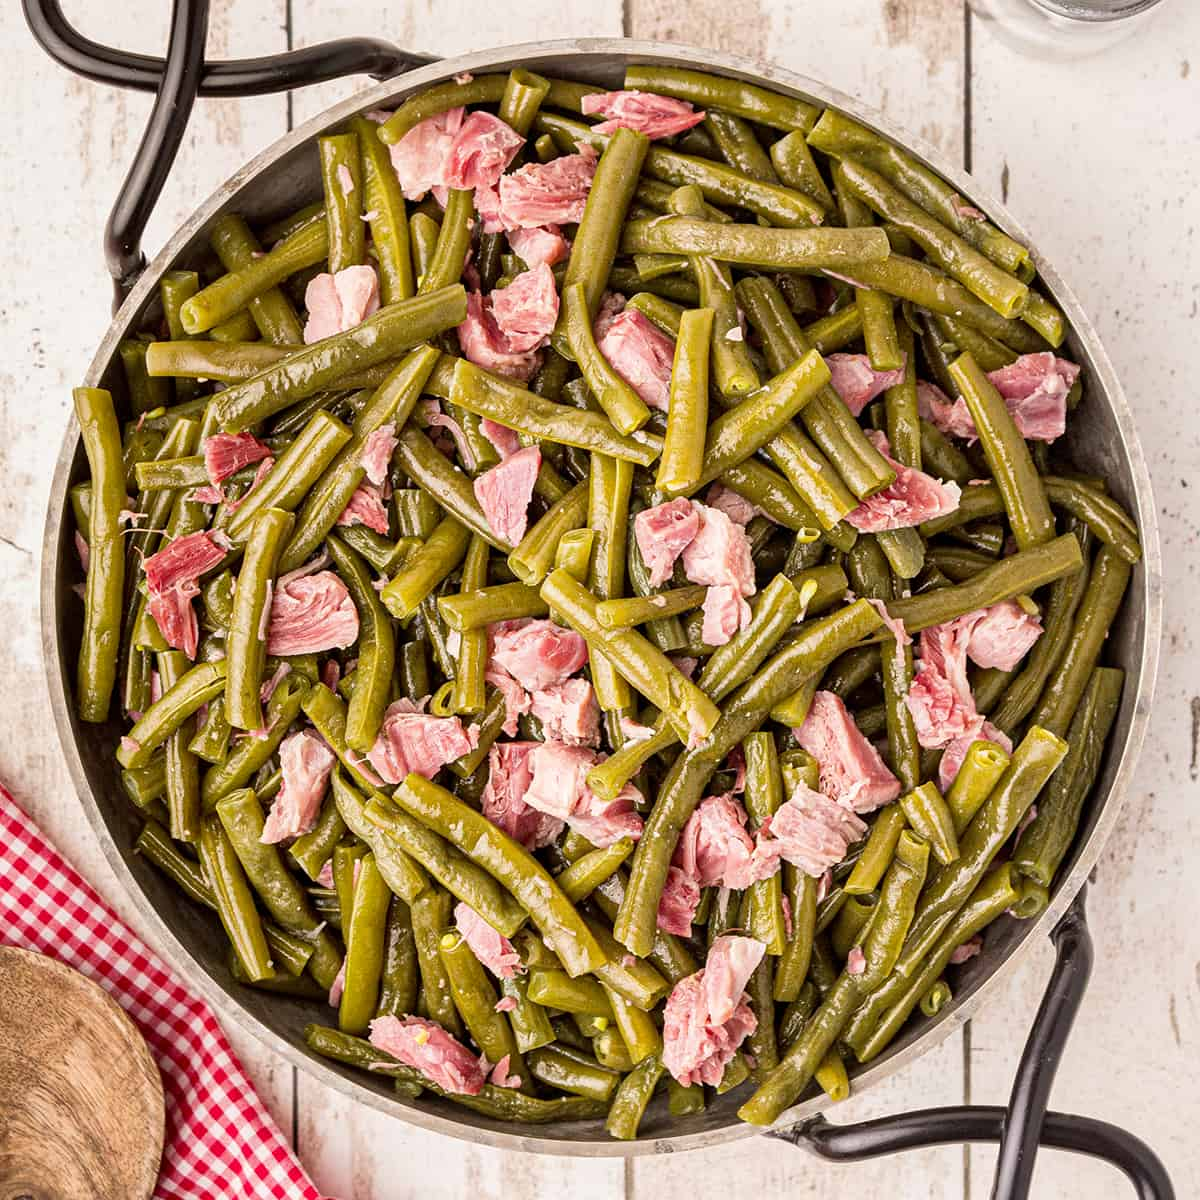 Old Fashioned Southern Style Green Beans with ham hocks in a serving dish on a tabletop.